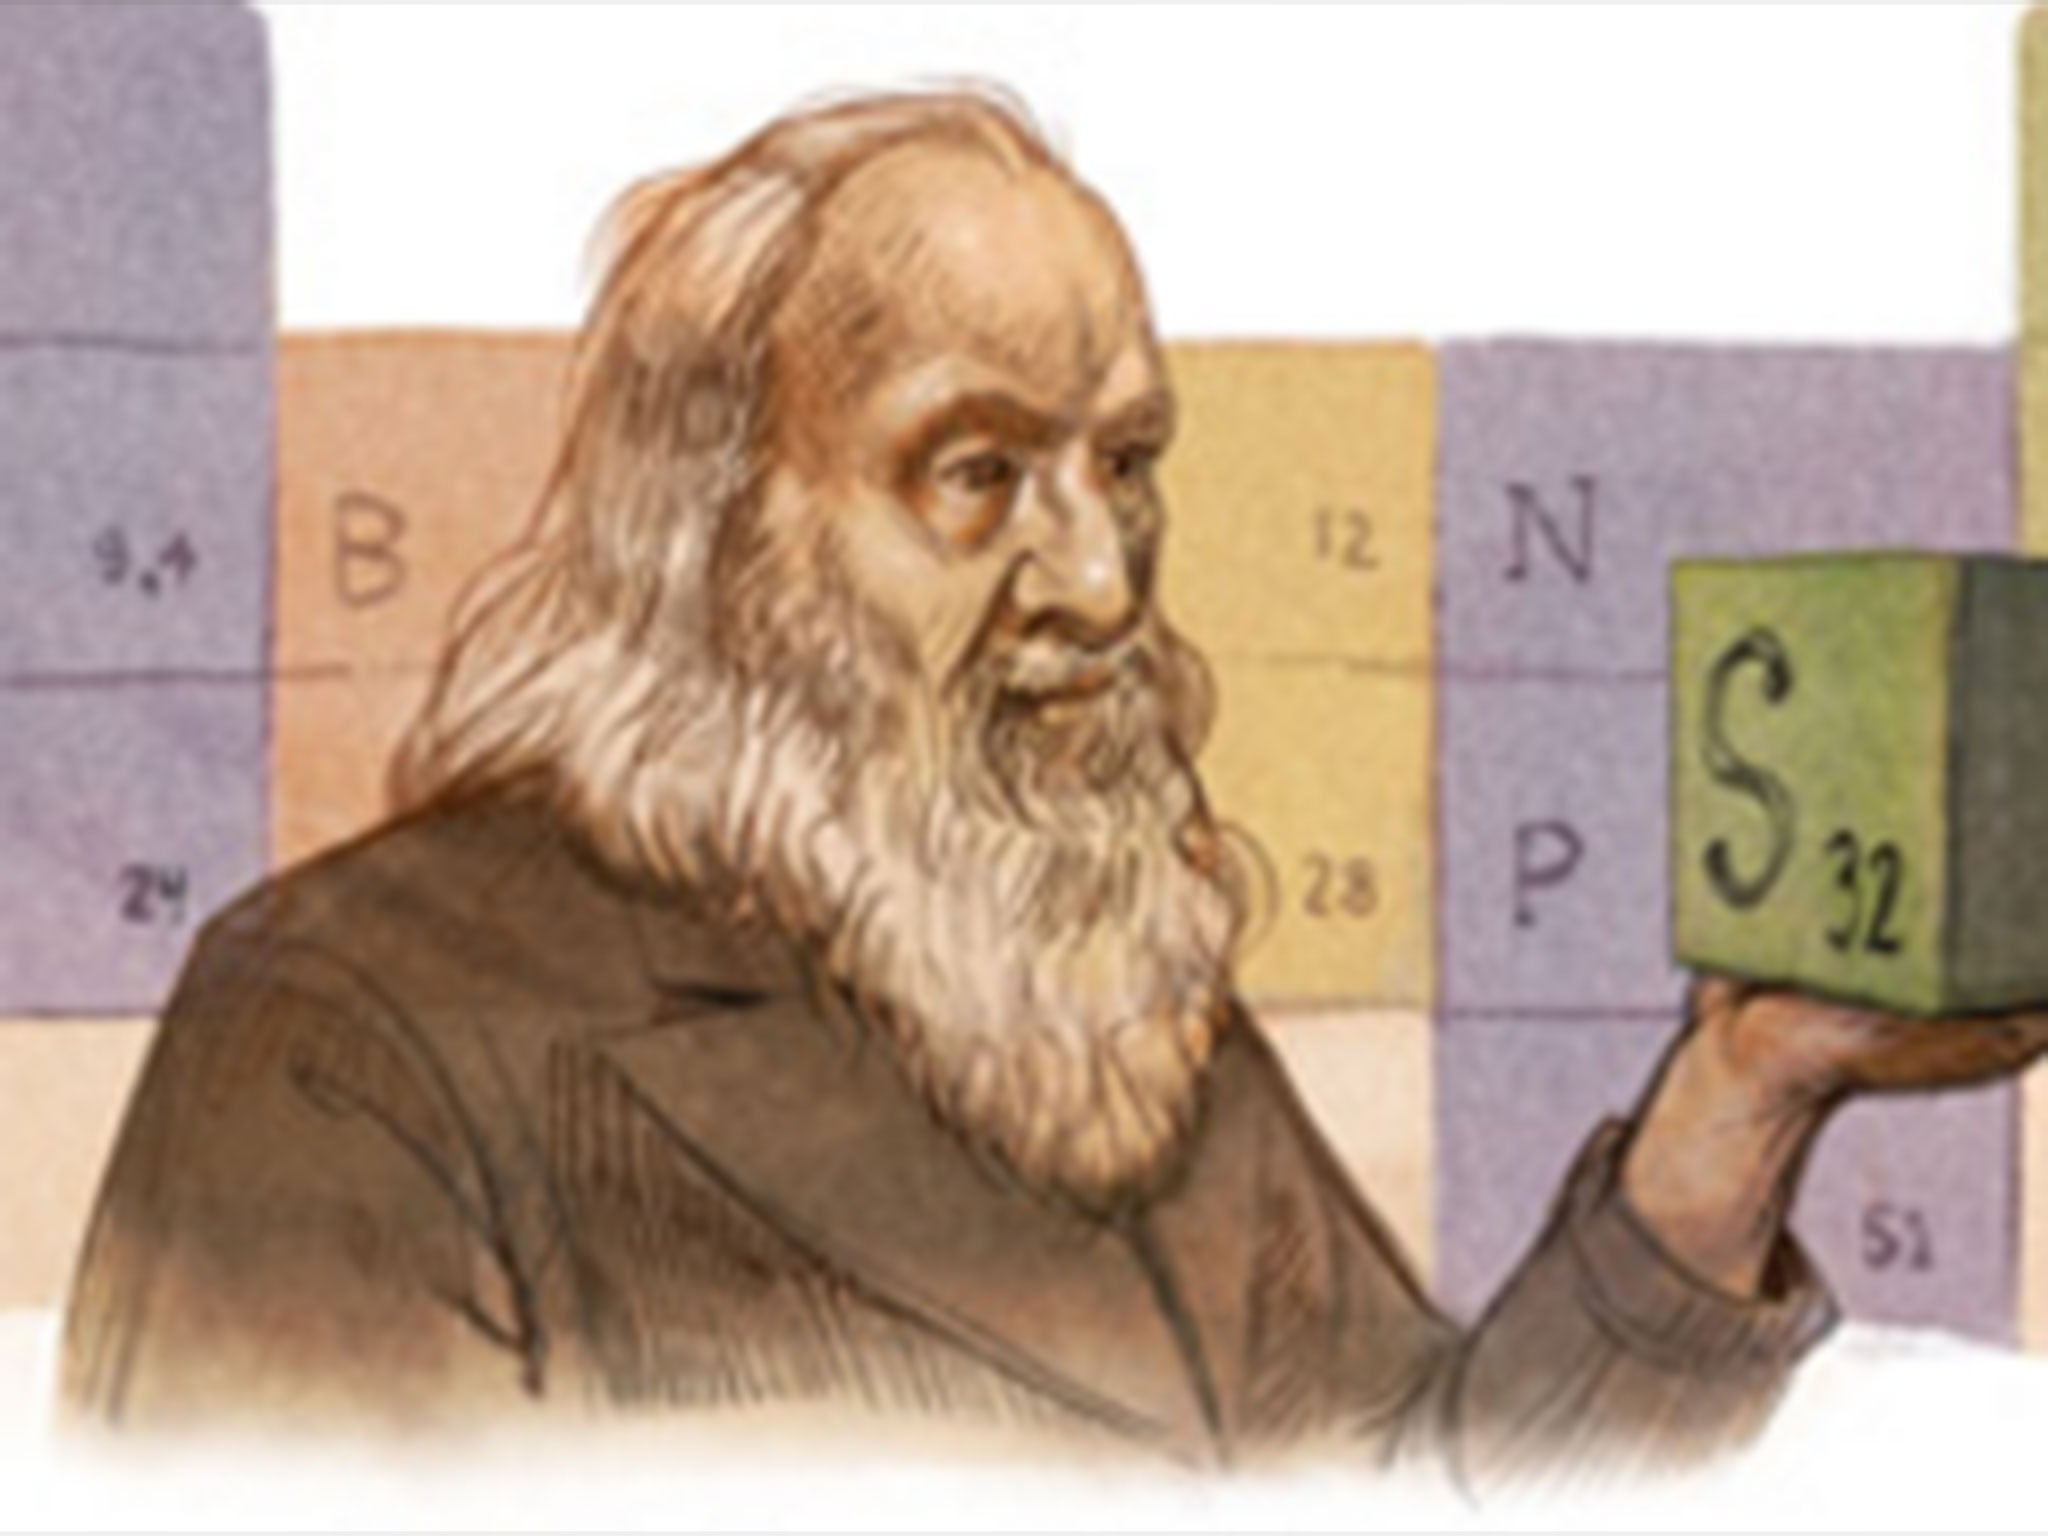 Dmitri mendeleev five facts you possibly didnt know about the dmitri mendeleev five facts you possibly didnt know about the periodic table the independent gamestrikefo Image collections